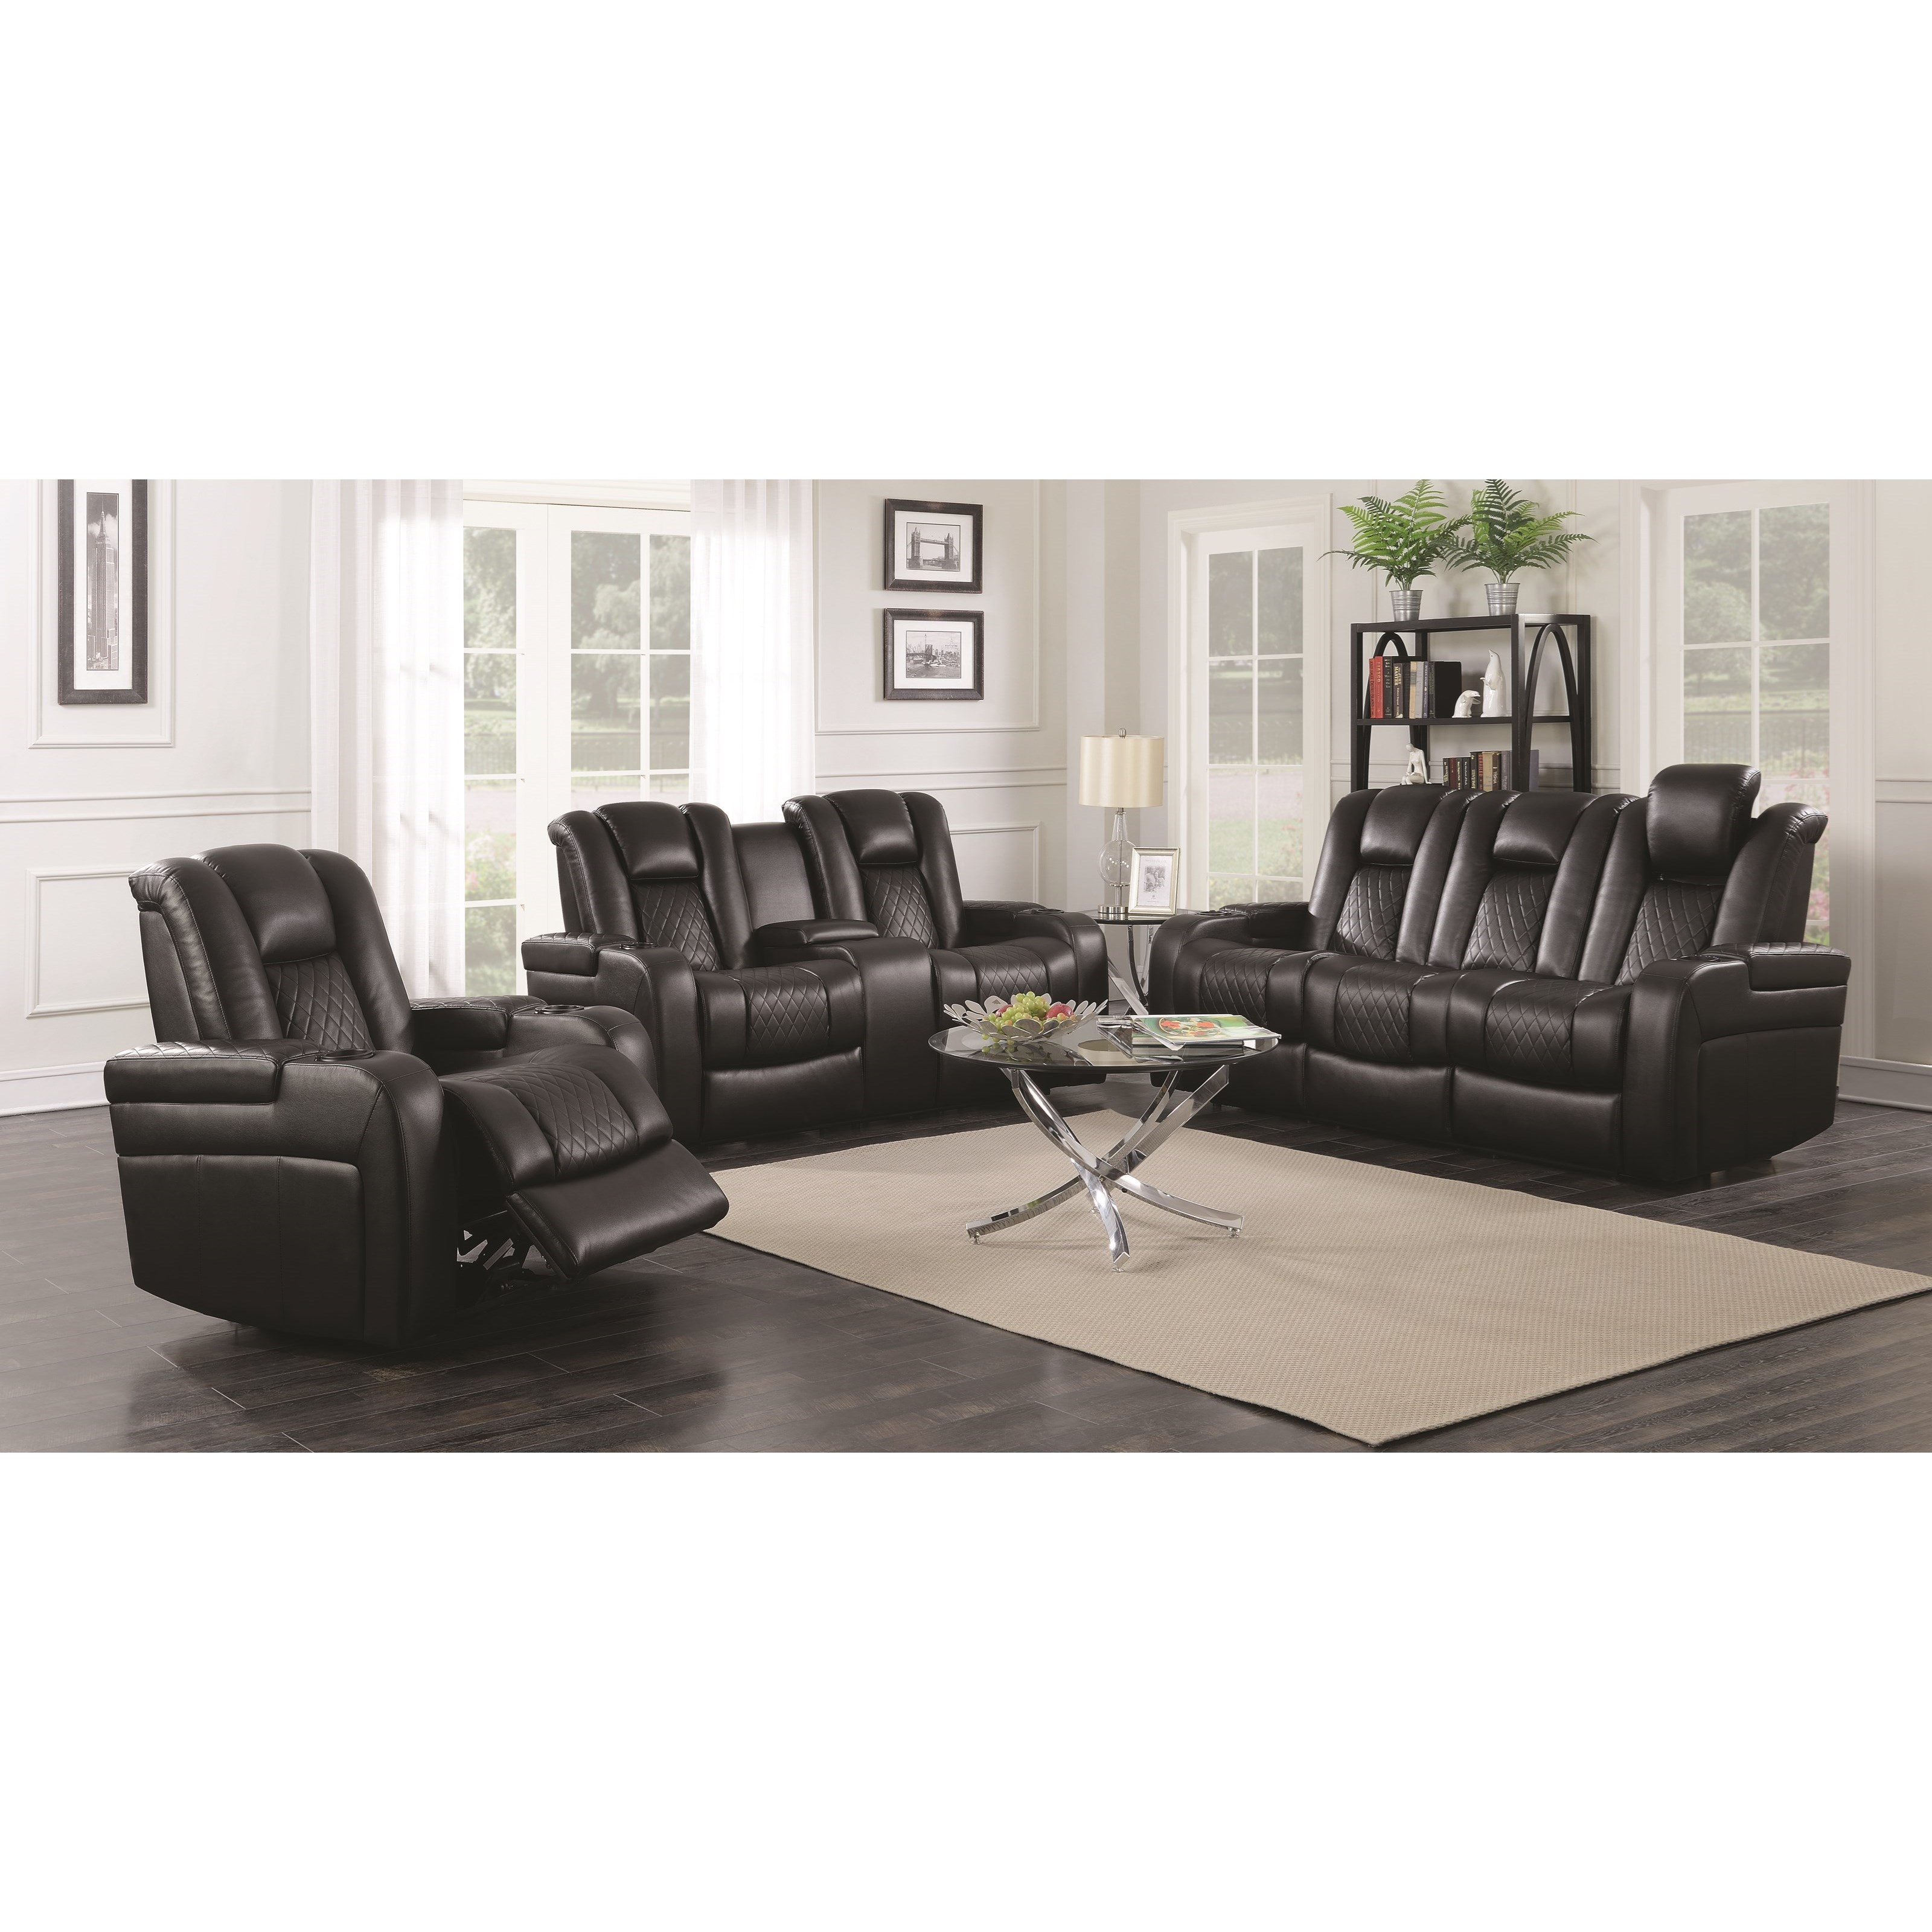 Delangelo Reclining Living Room Group by Coaster at Northeast Factory Direct